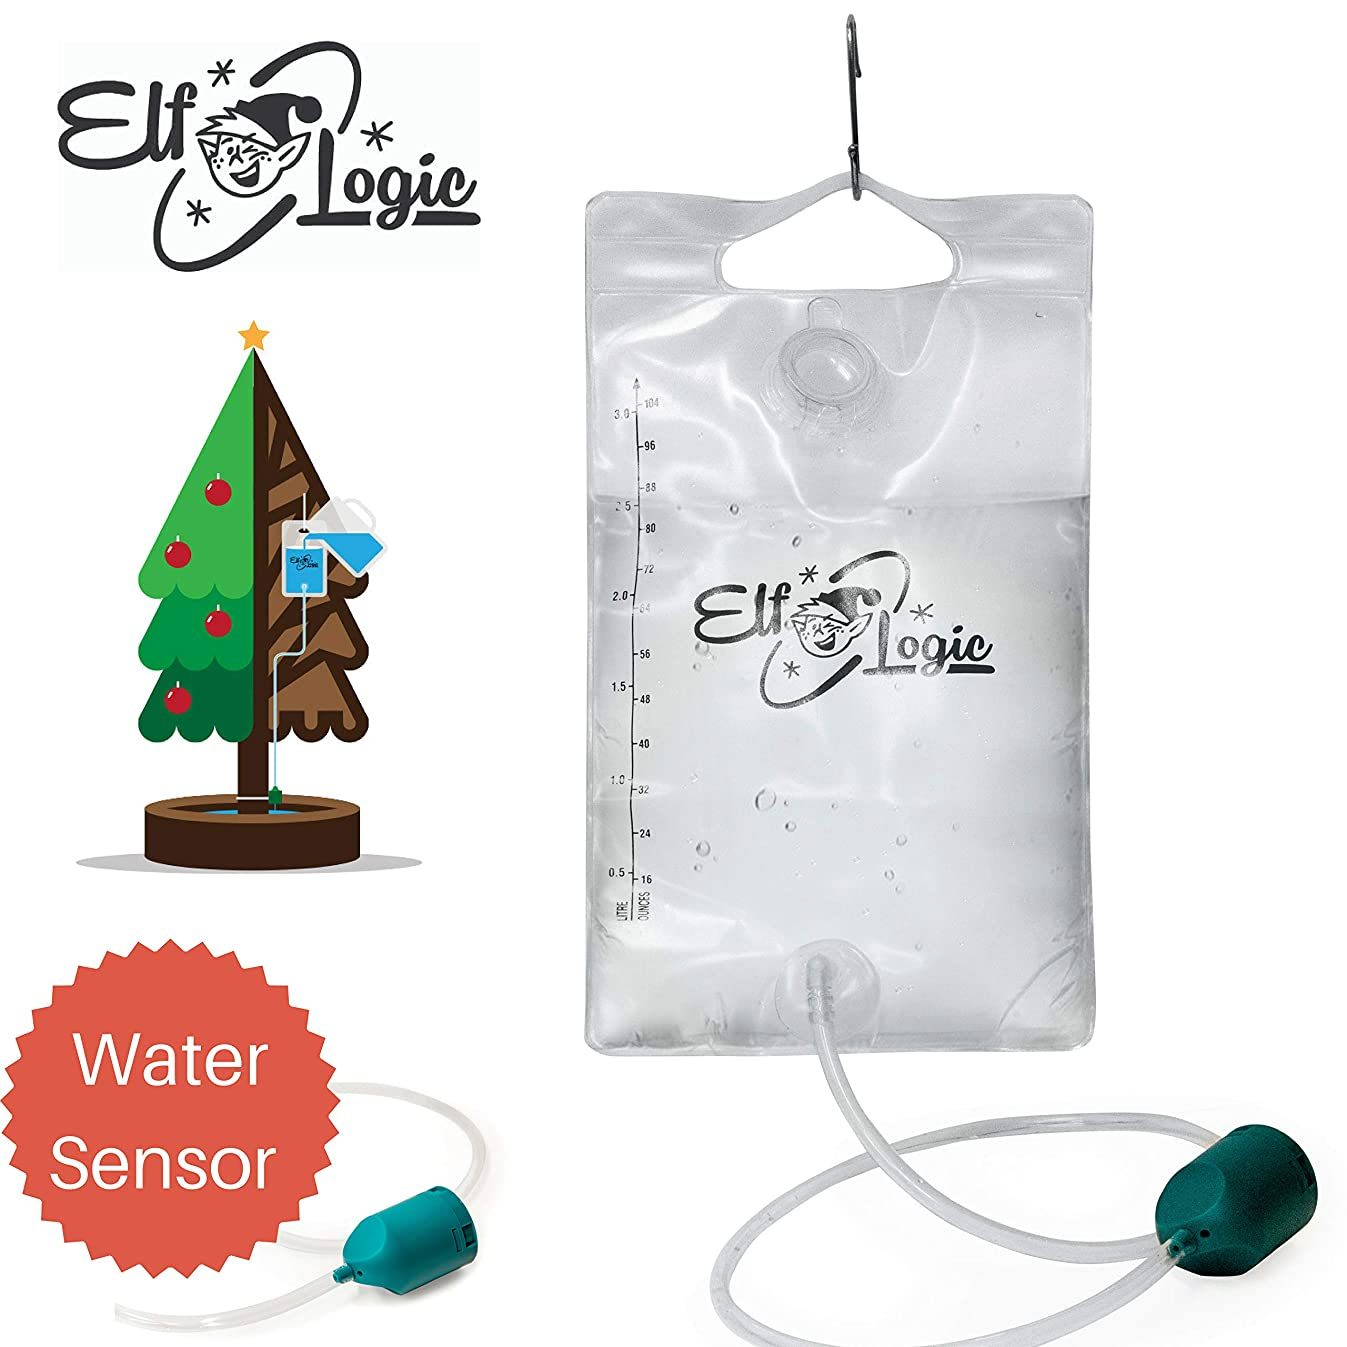 Elf Logic - Automated Christmas Tree Waterer - Smart Tree Watering System - Senses When Water Levels Drops & Funnels Water to Christmas Tree Automatically